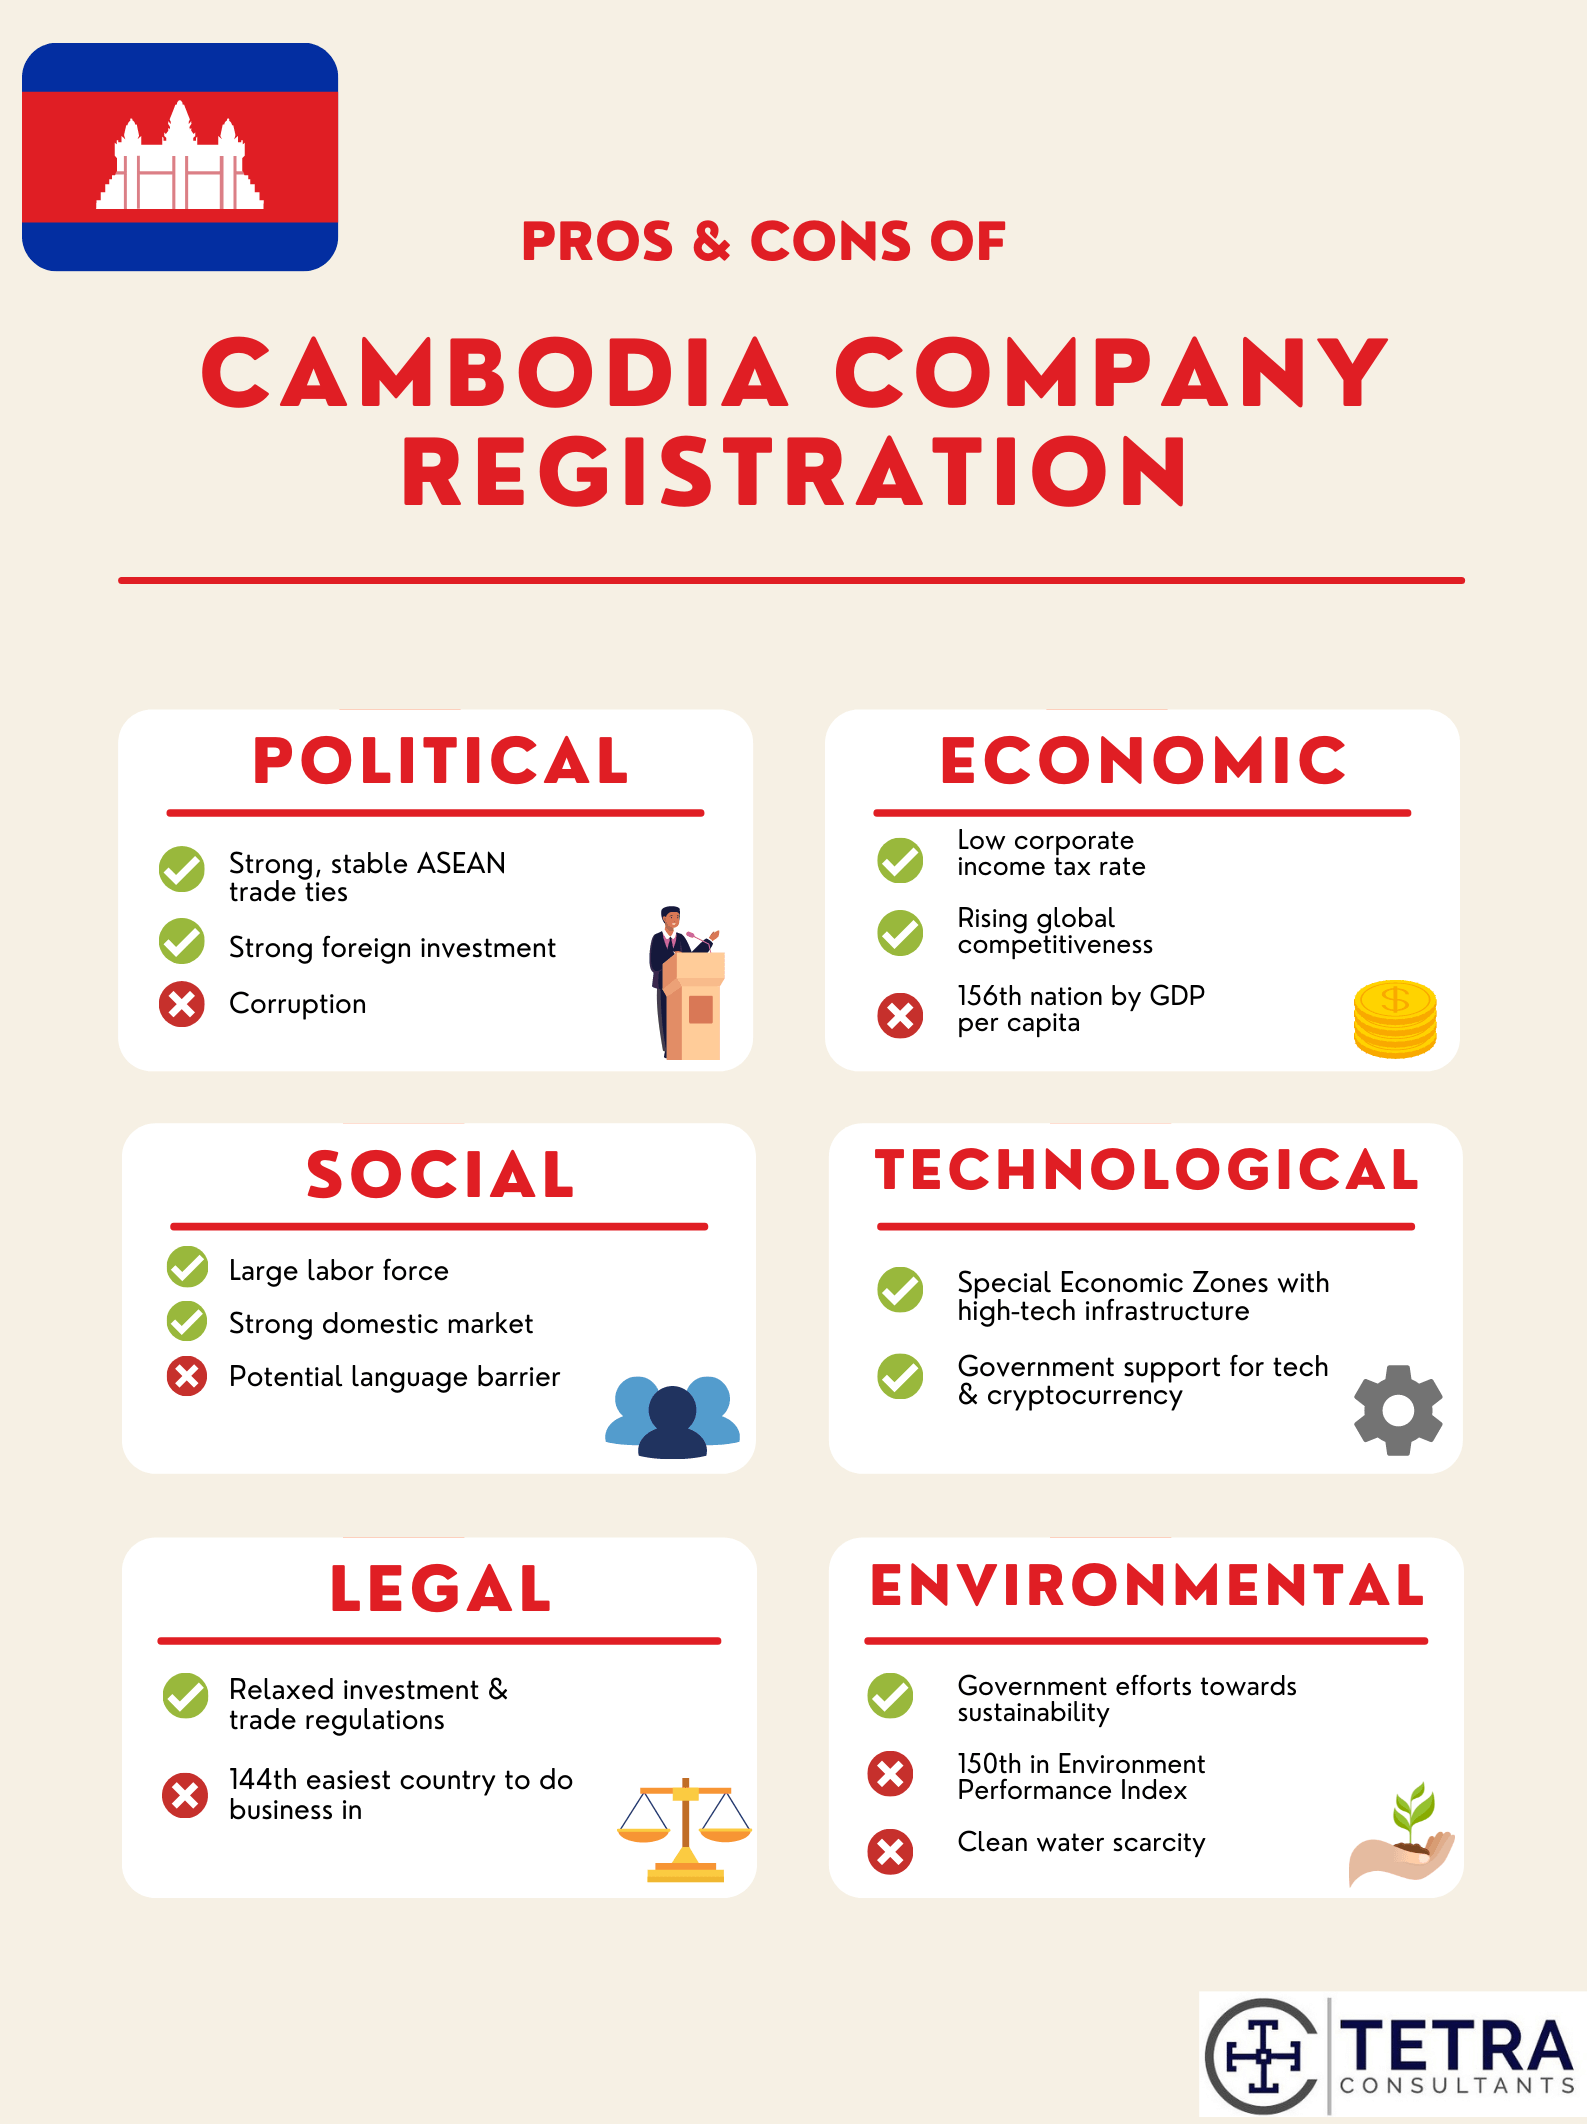 pros and cons of cambodia company registration